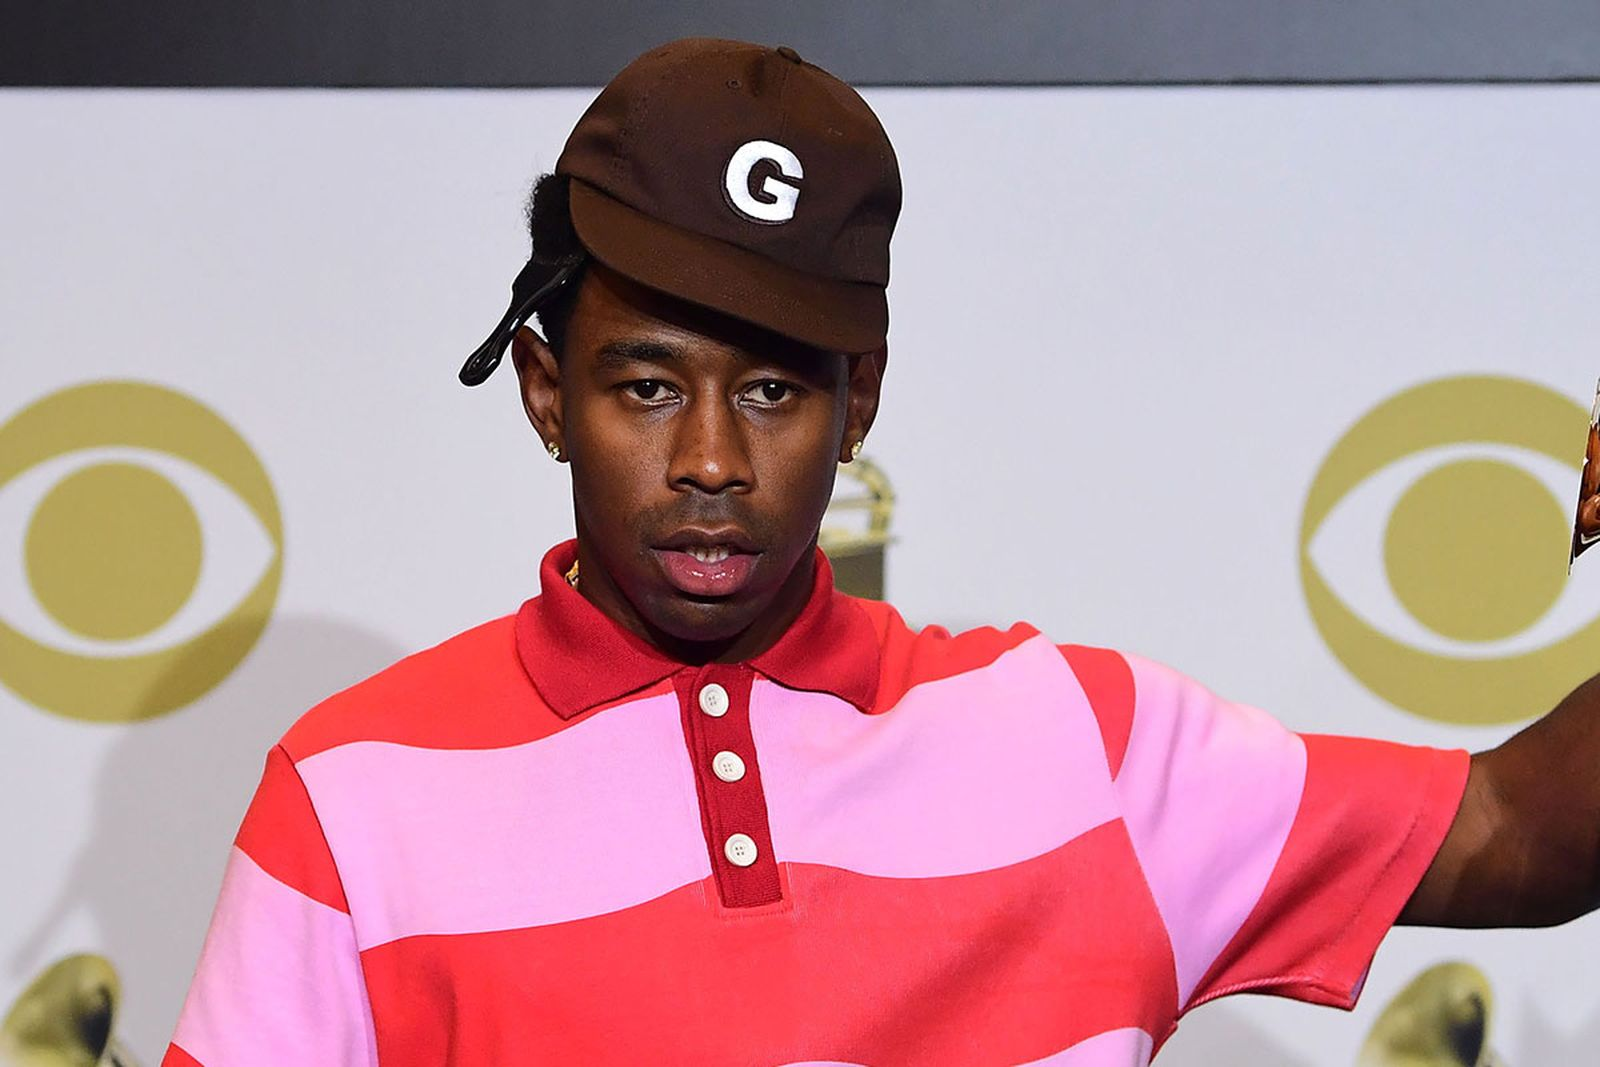 Tyler the Creator at the 62nd Grammy Awards